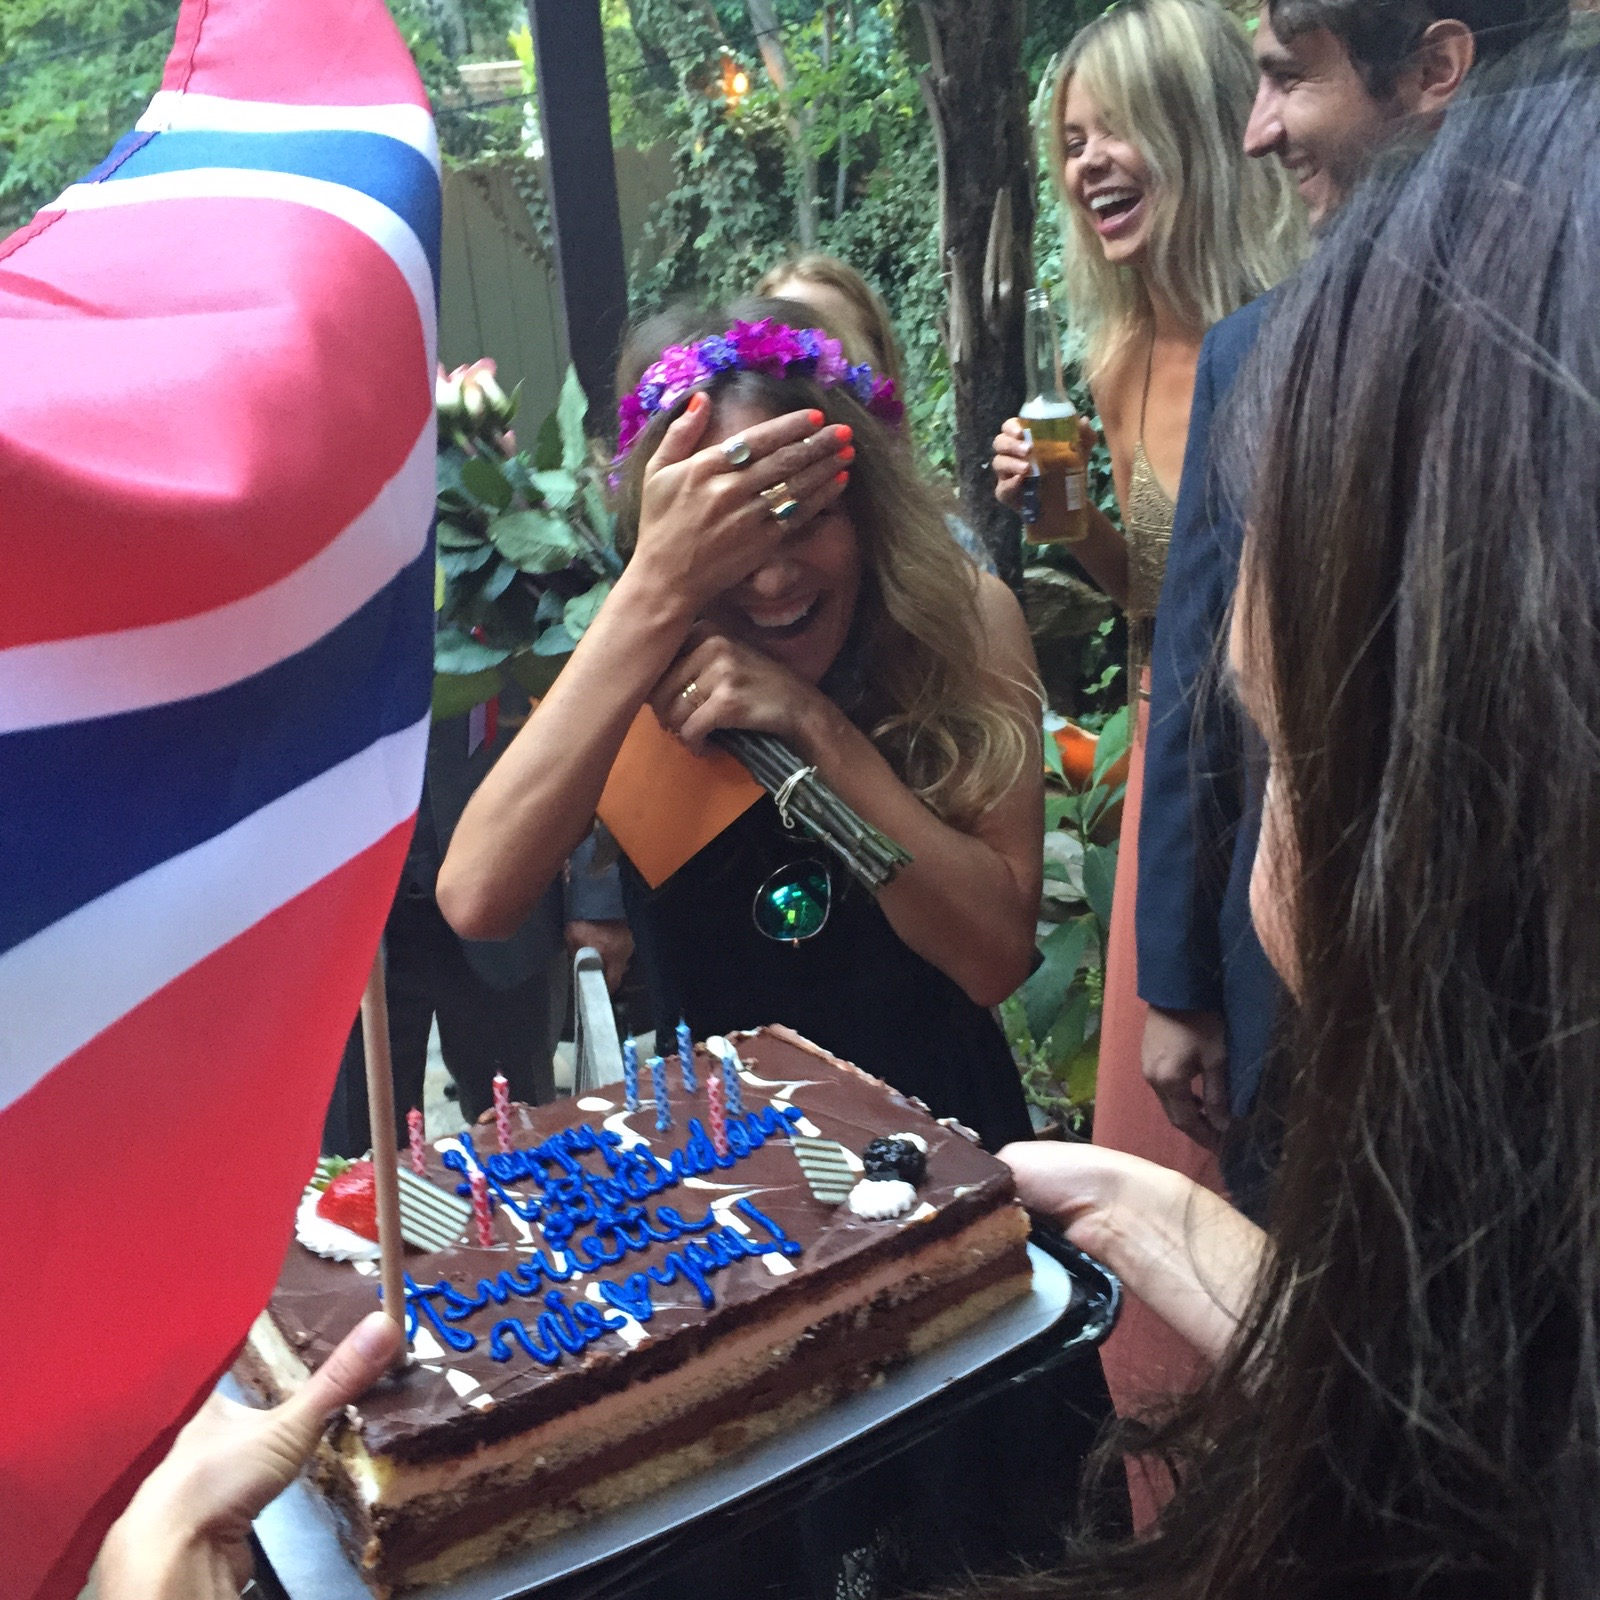 May 17th, 2015 - Surprise B-Day party for me before going to the May 17th afterparty.